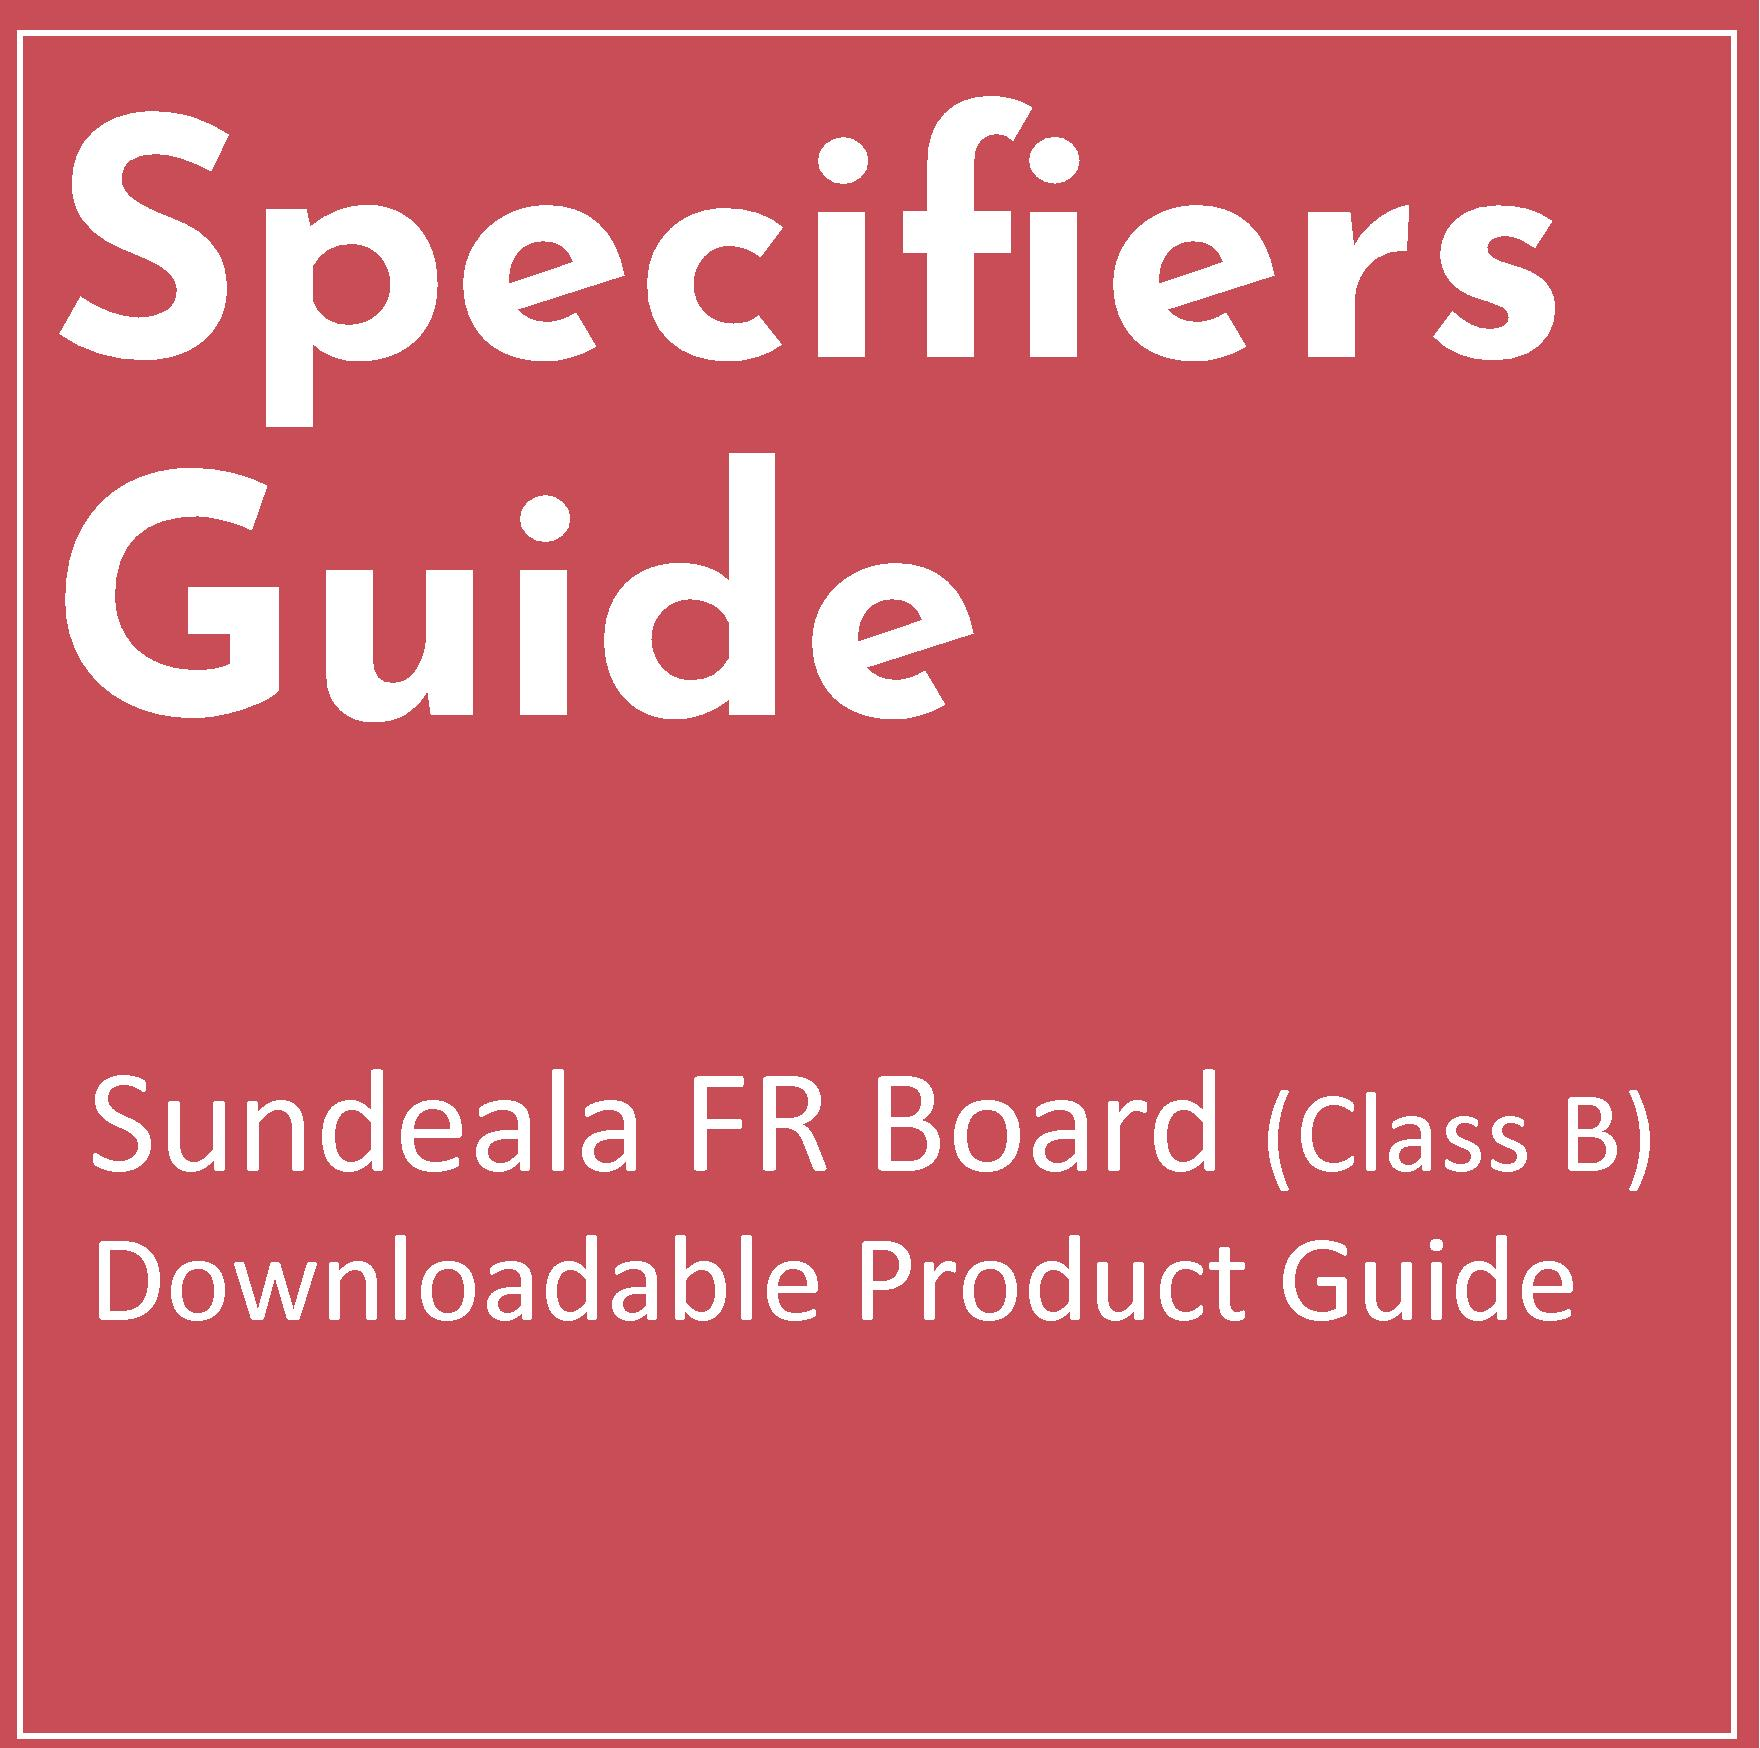 Specifiers Guide for Sundeala FR Board